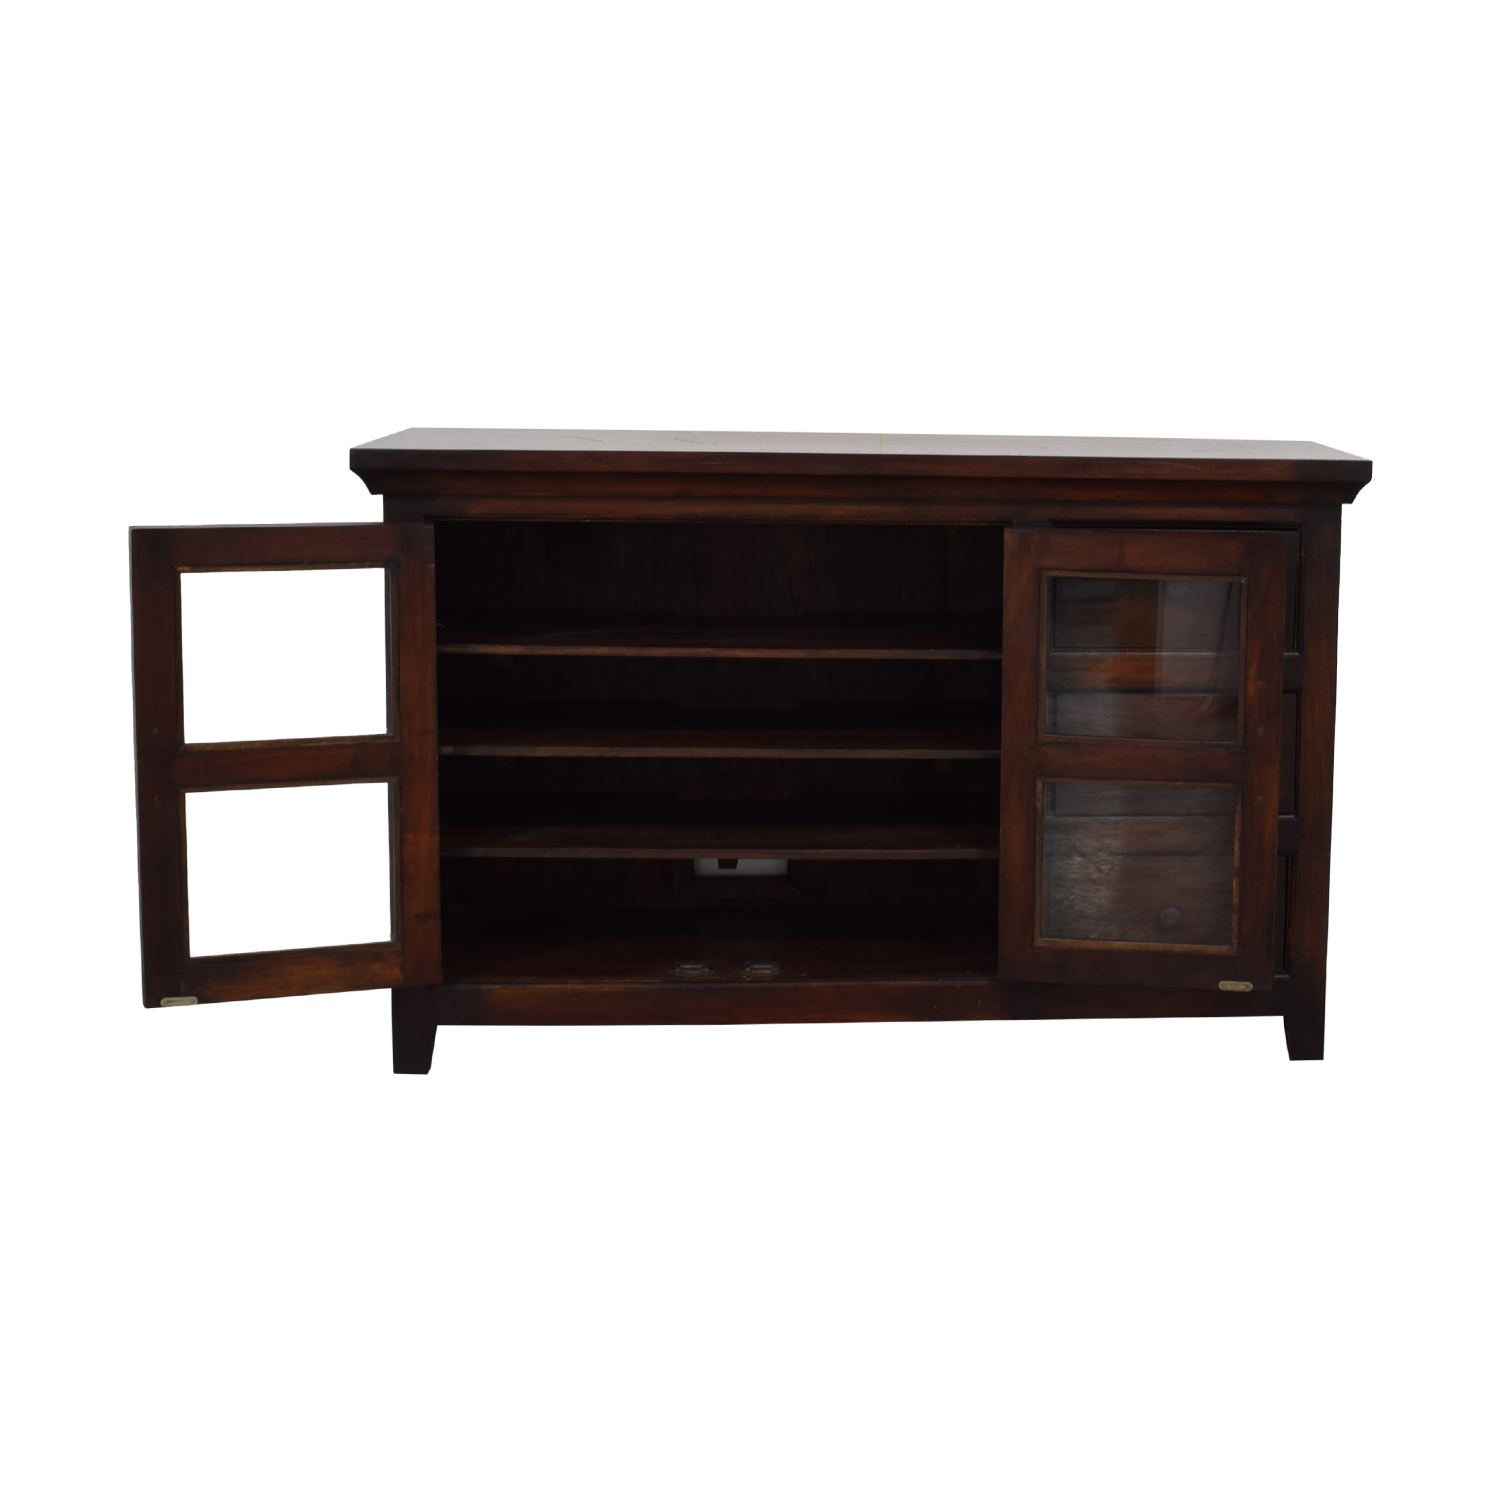 Crate & Barrel Crate & Barrel Three-Drawer Wood TV Console price